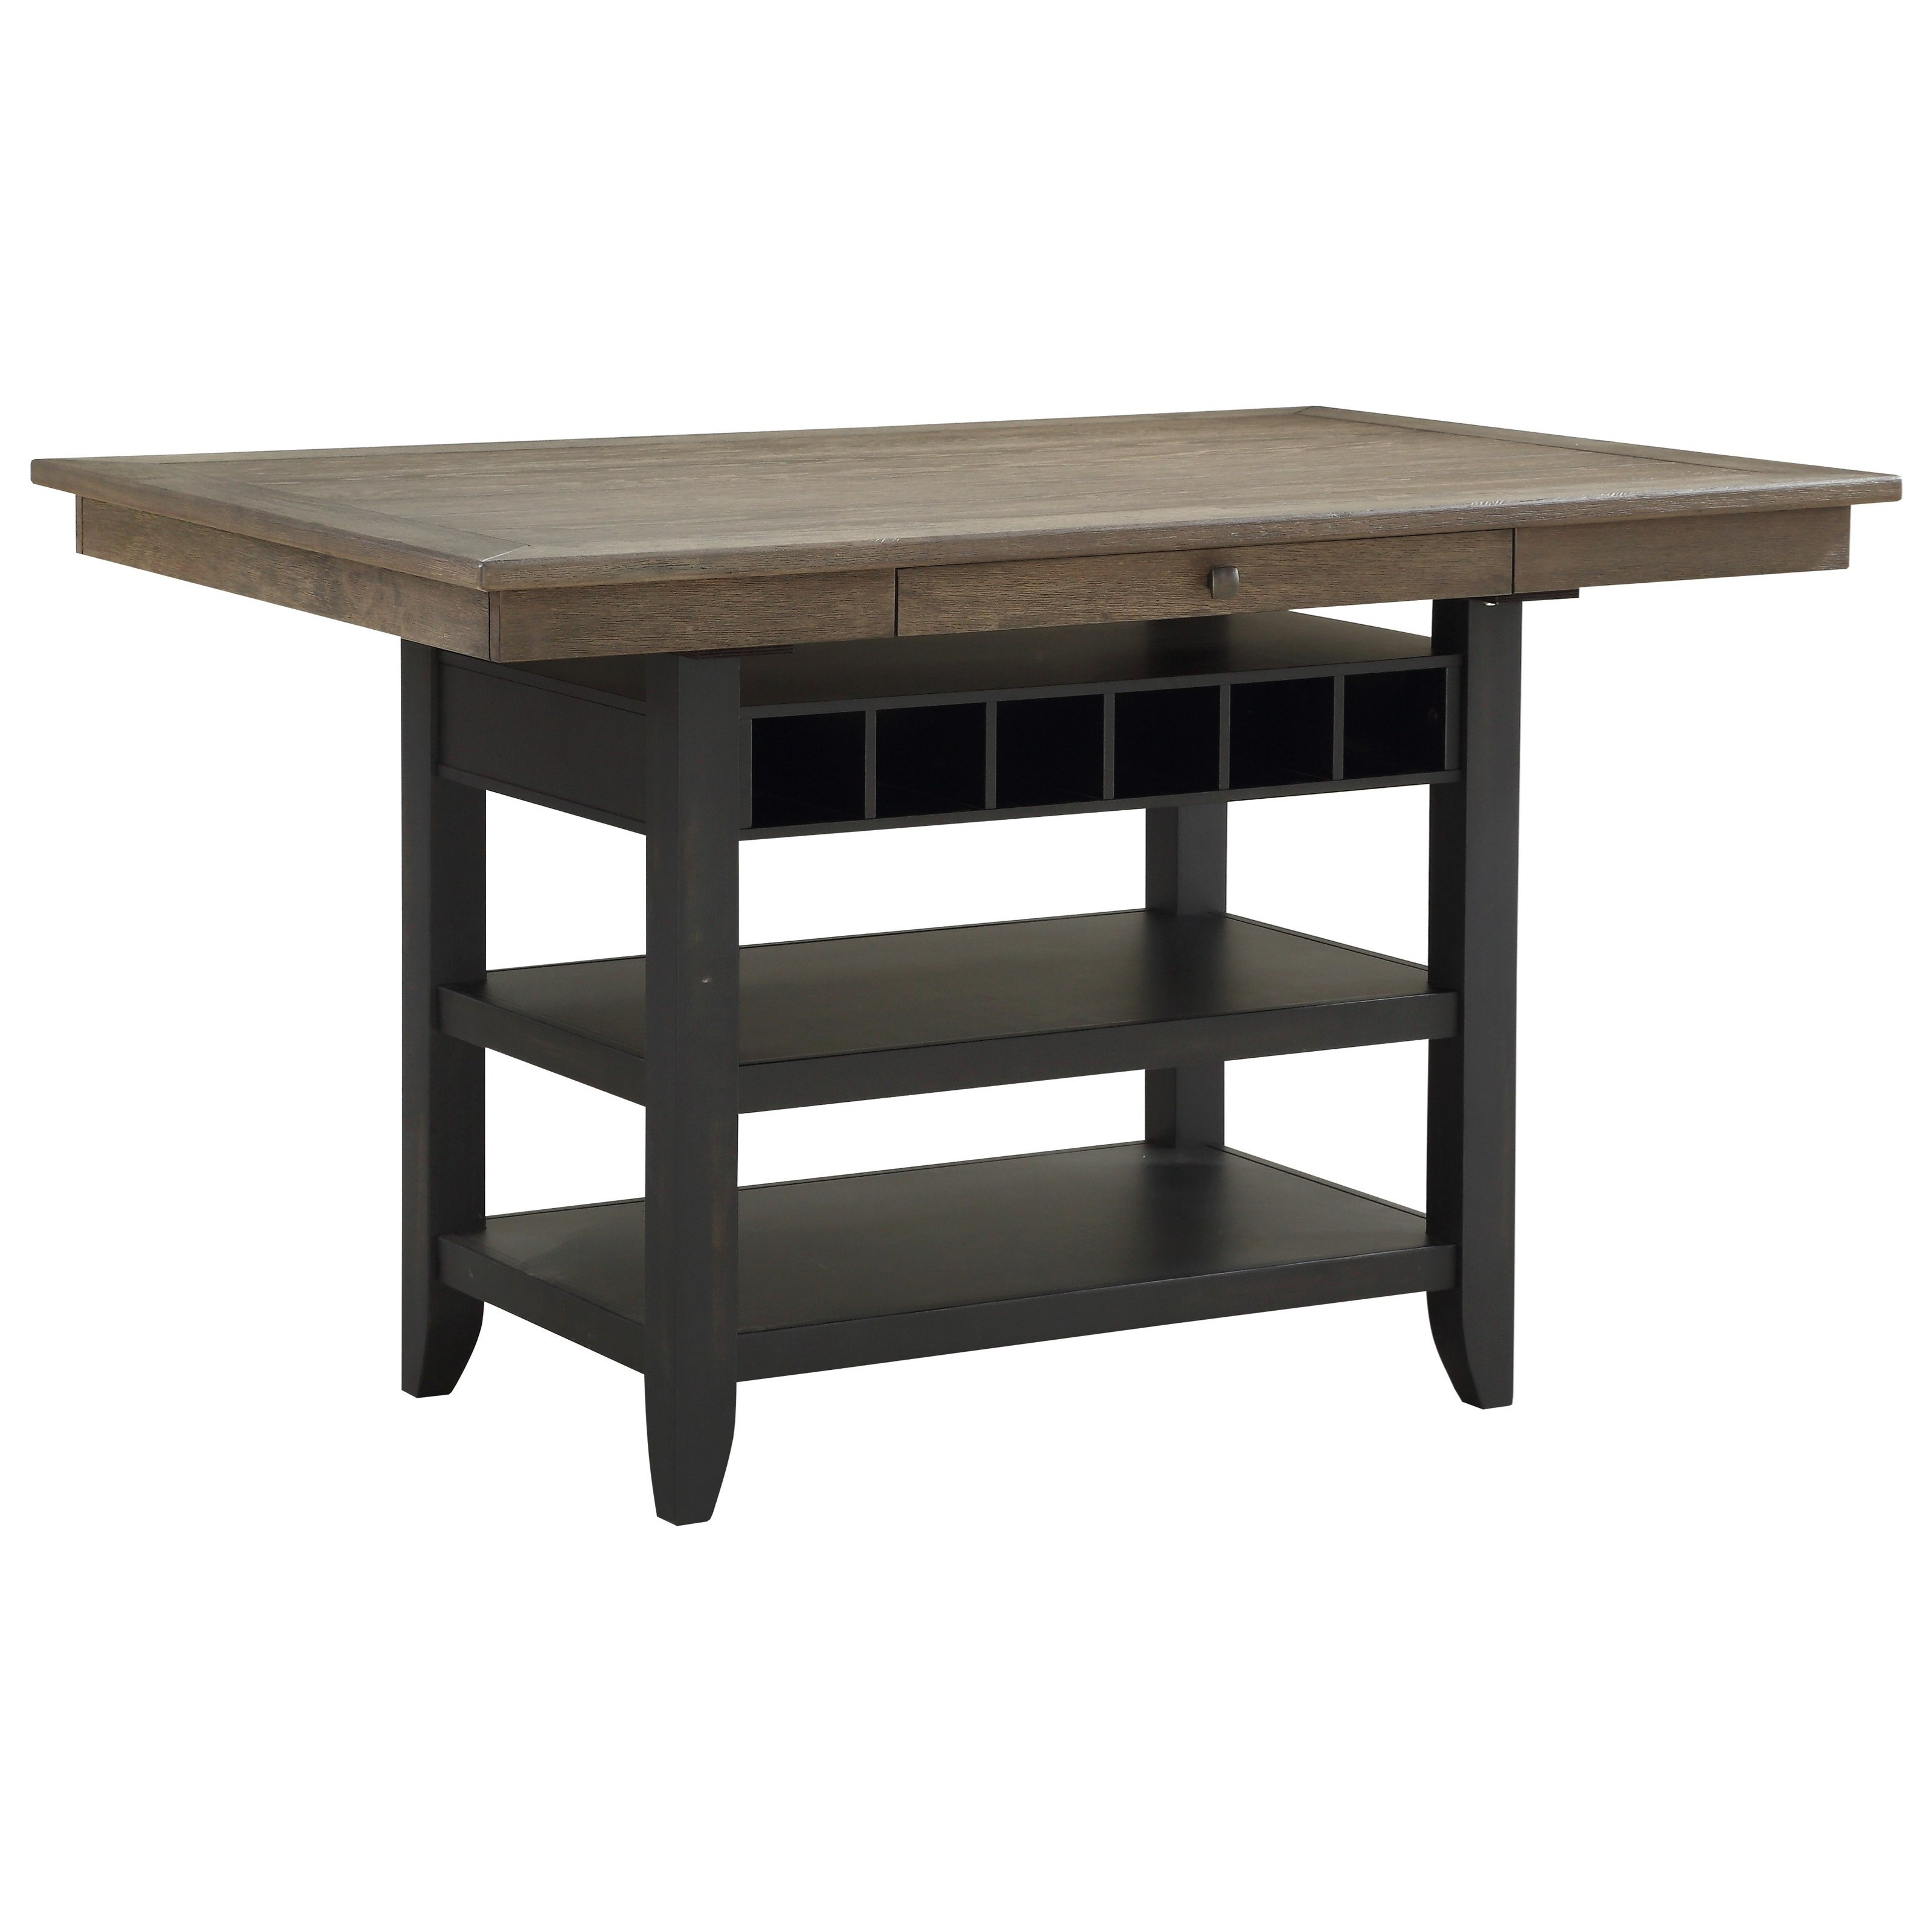 Buchanan Gathering Dining Table by Emerald at Northeast Factory Direct